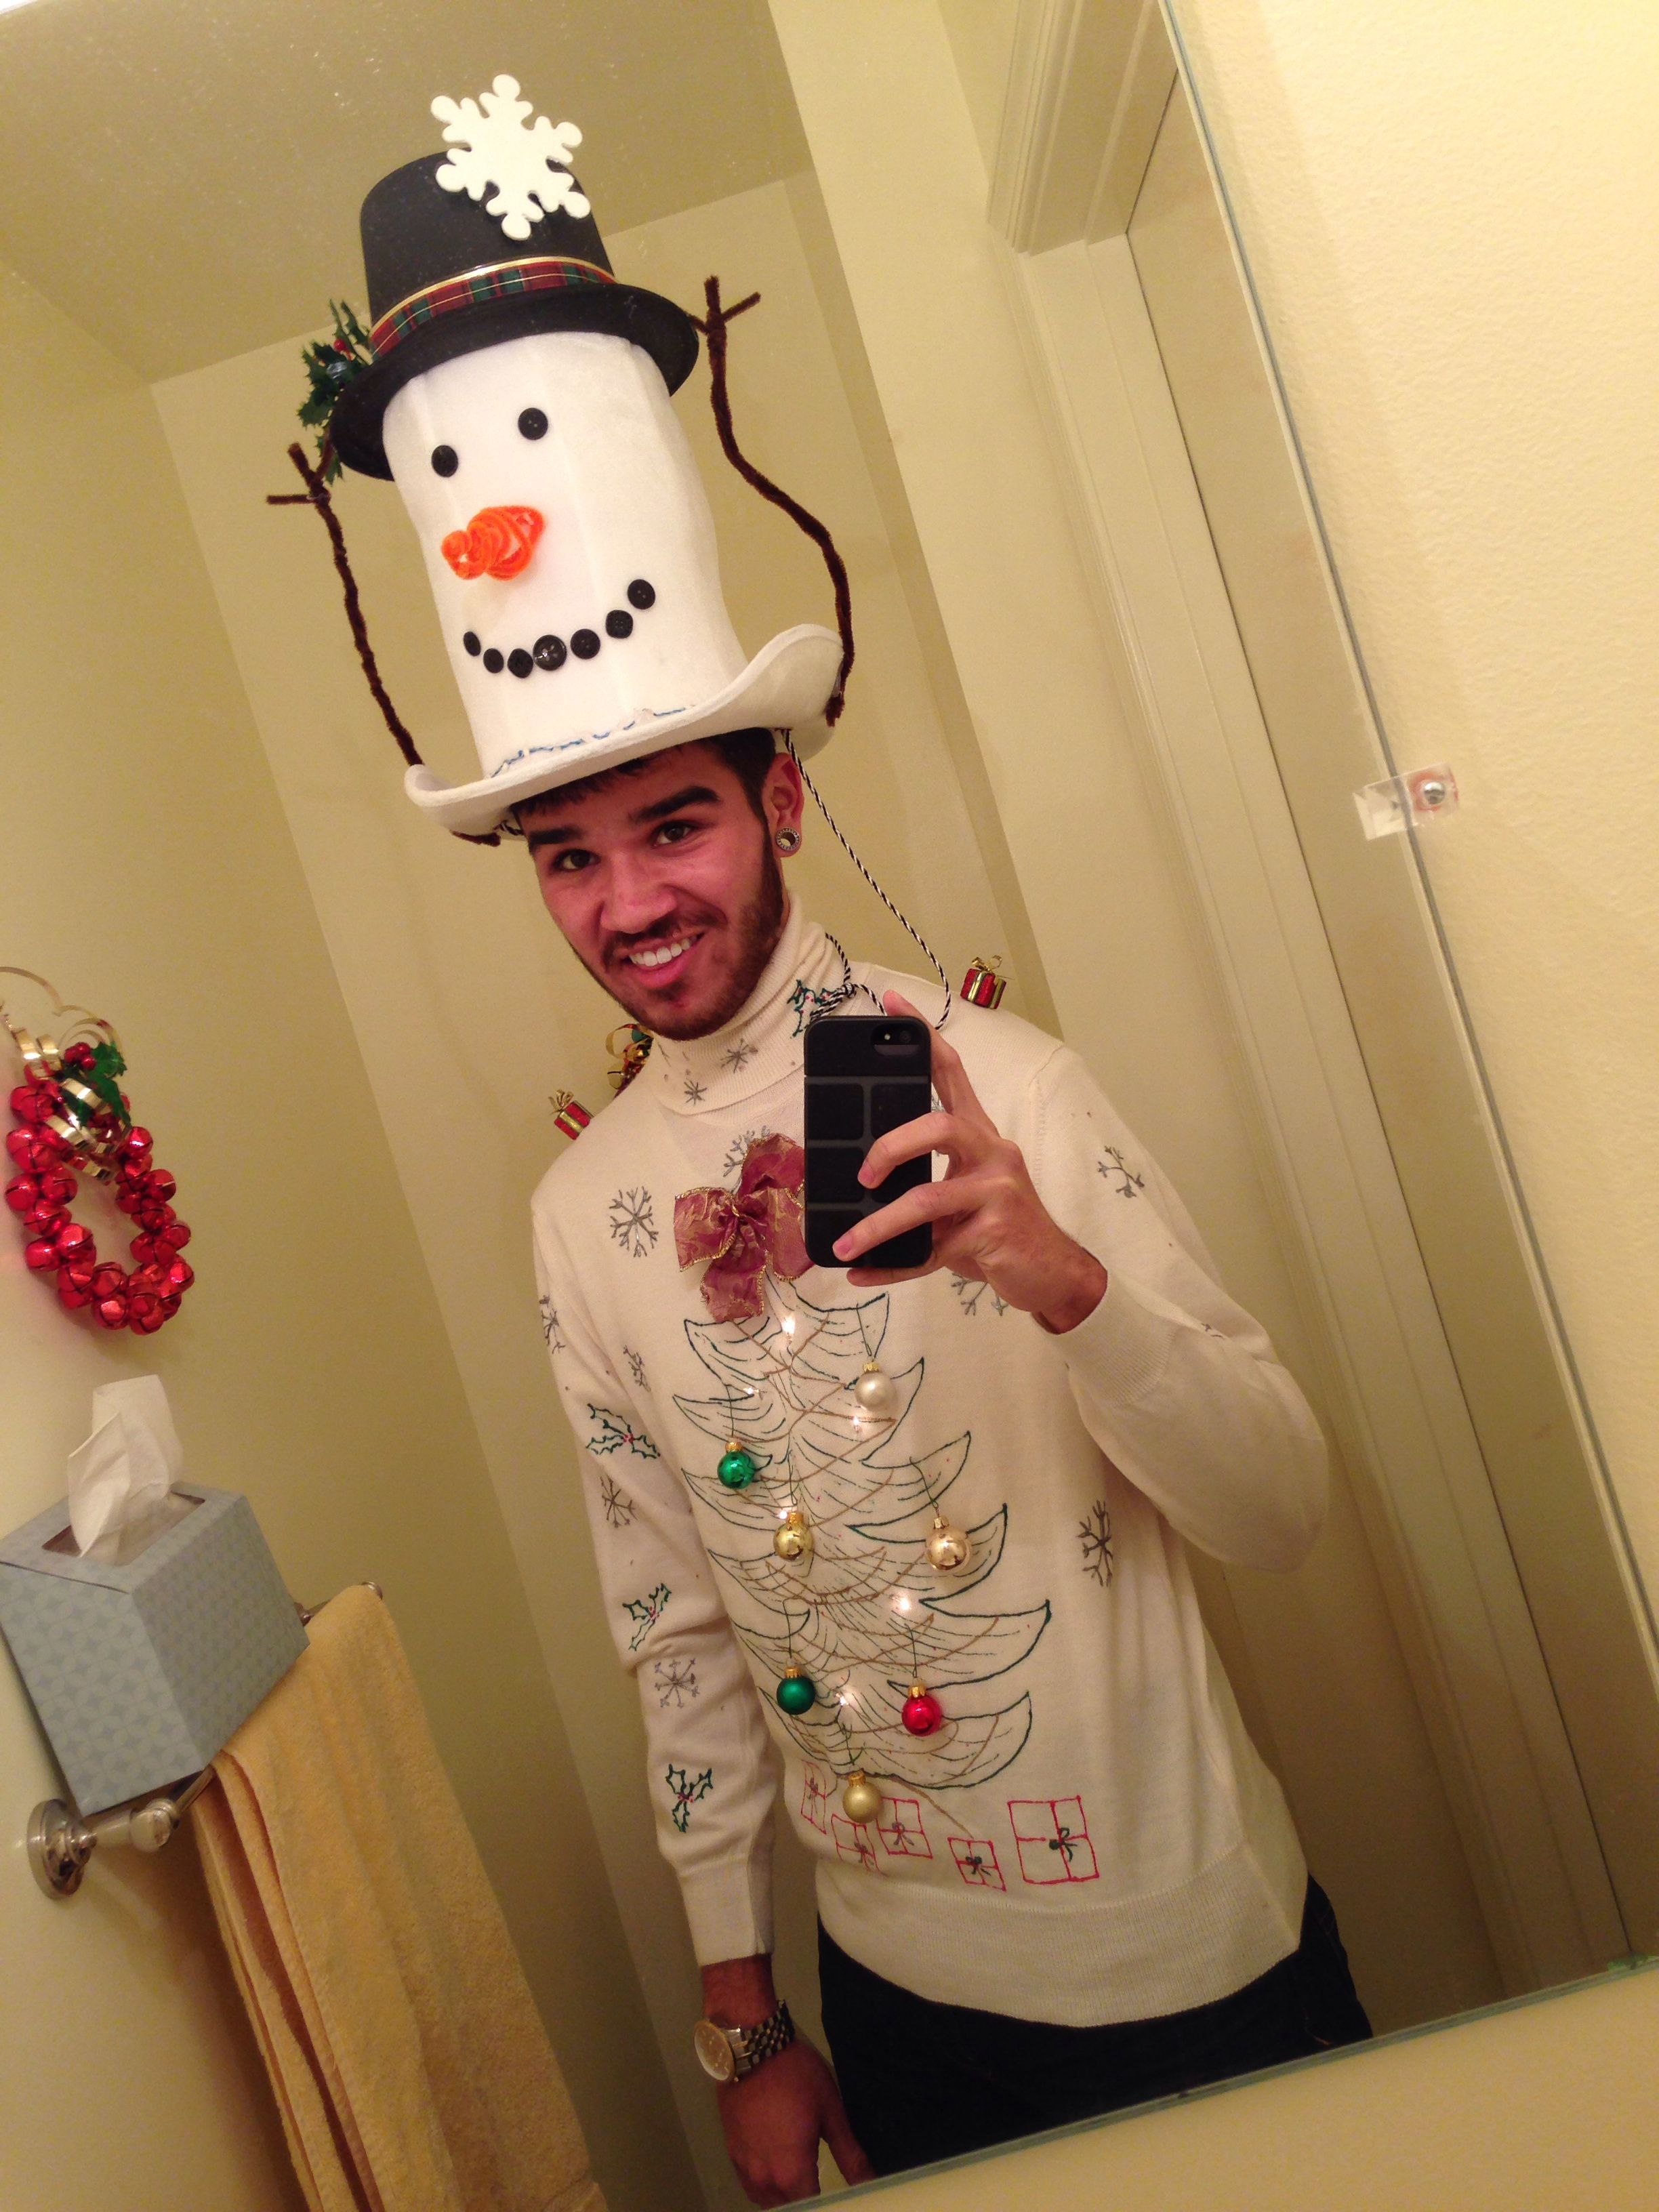 Awesome snowman hat accessory for your ugly Christmas sweater!